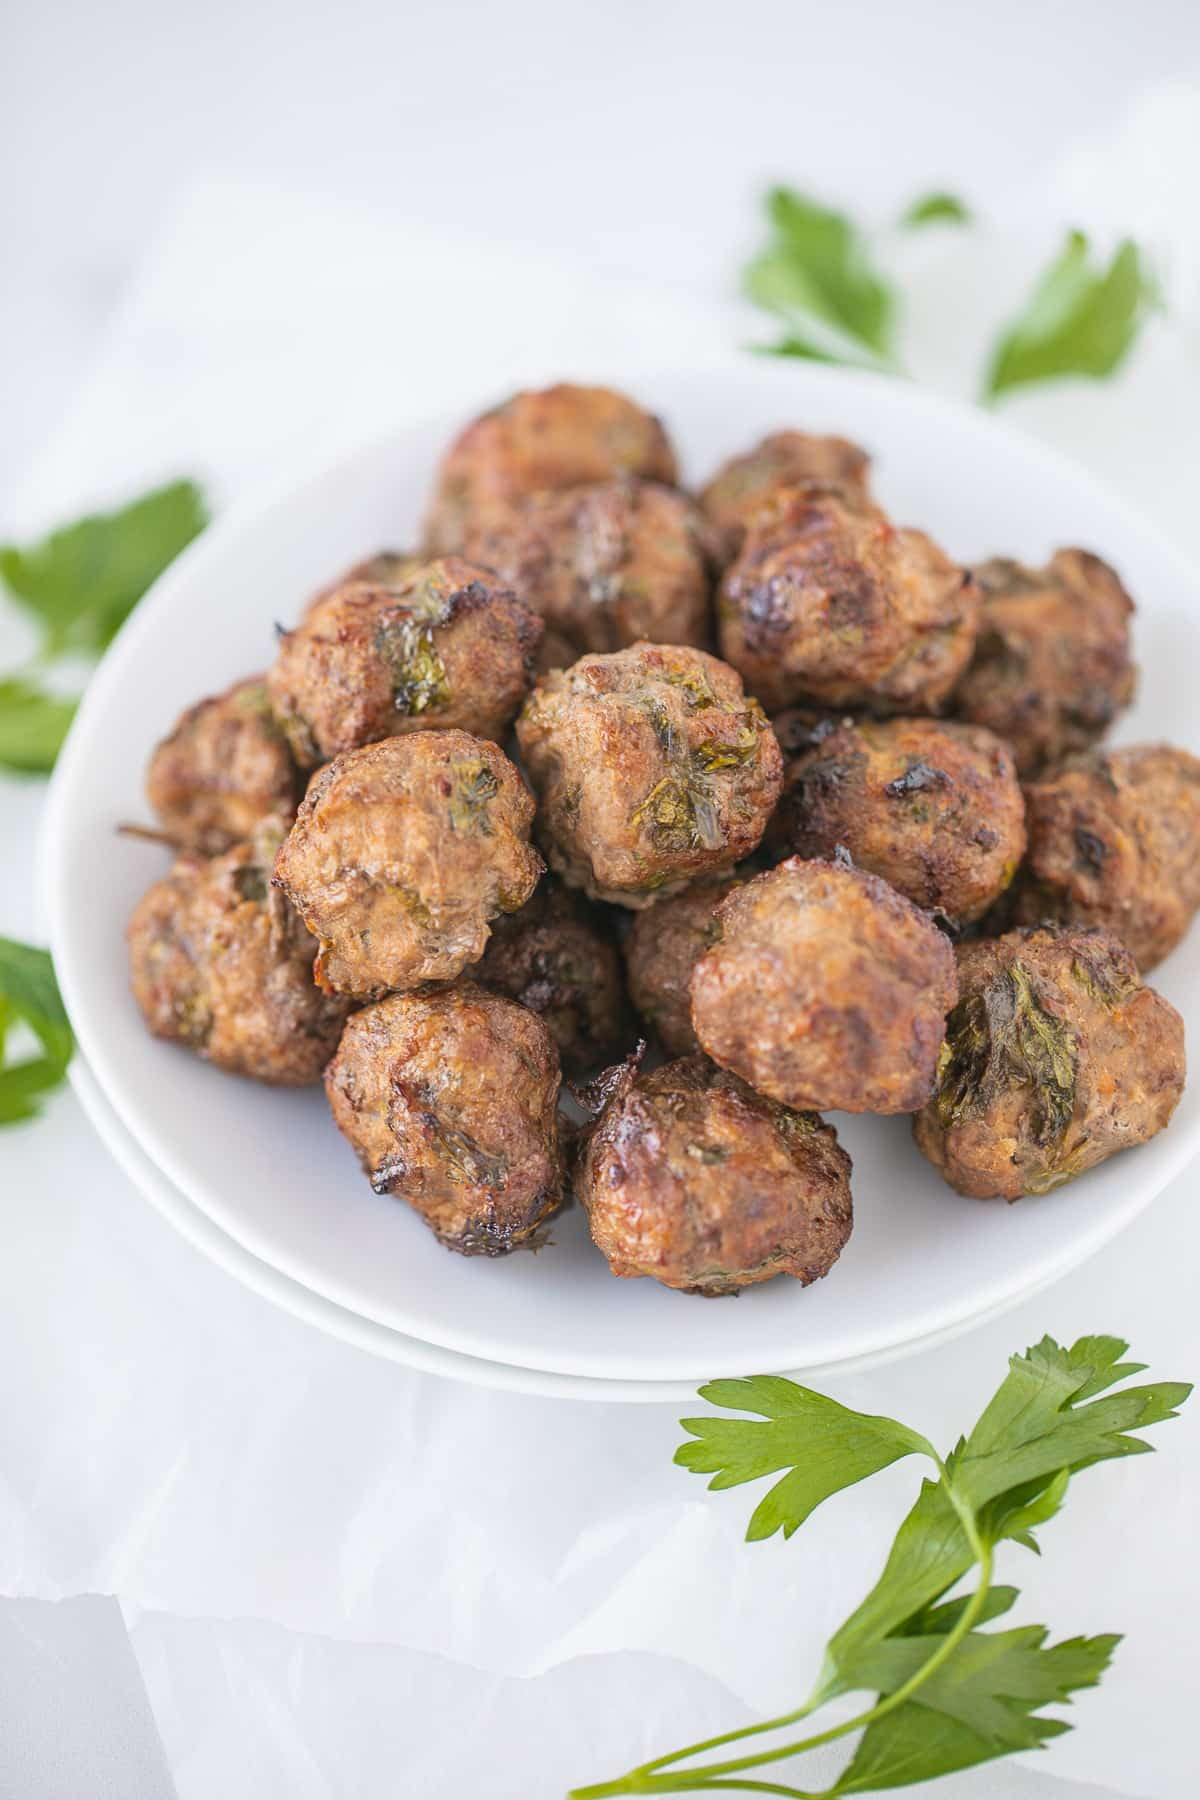 cooked meatballs on a plate ready to eat